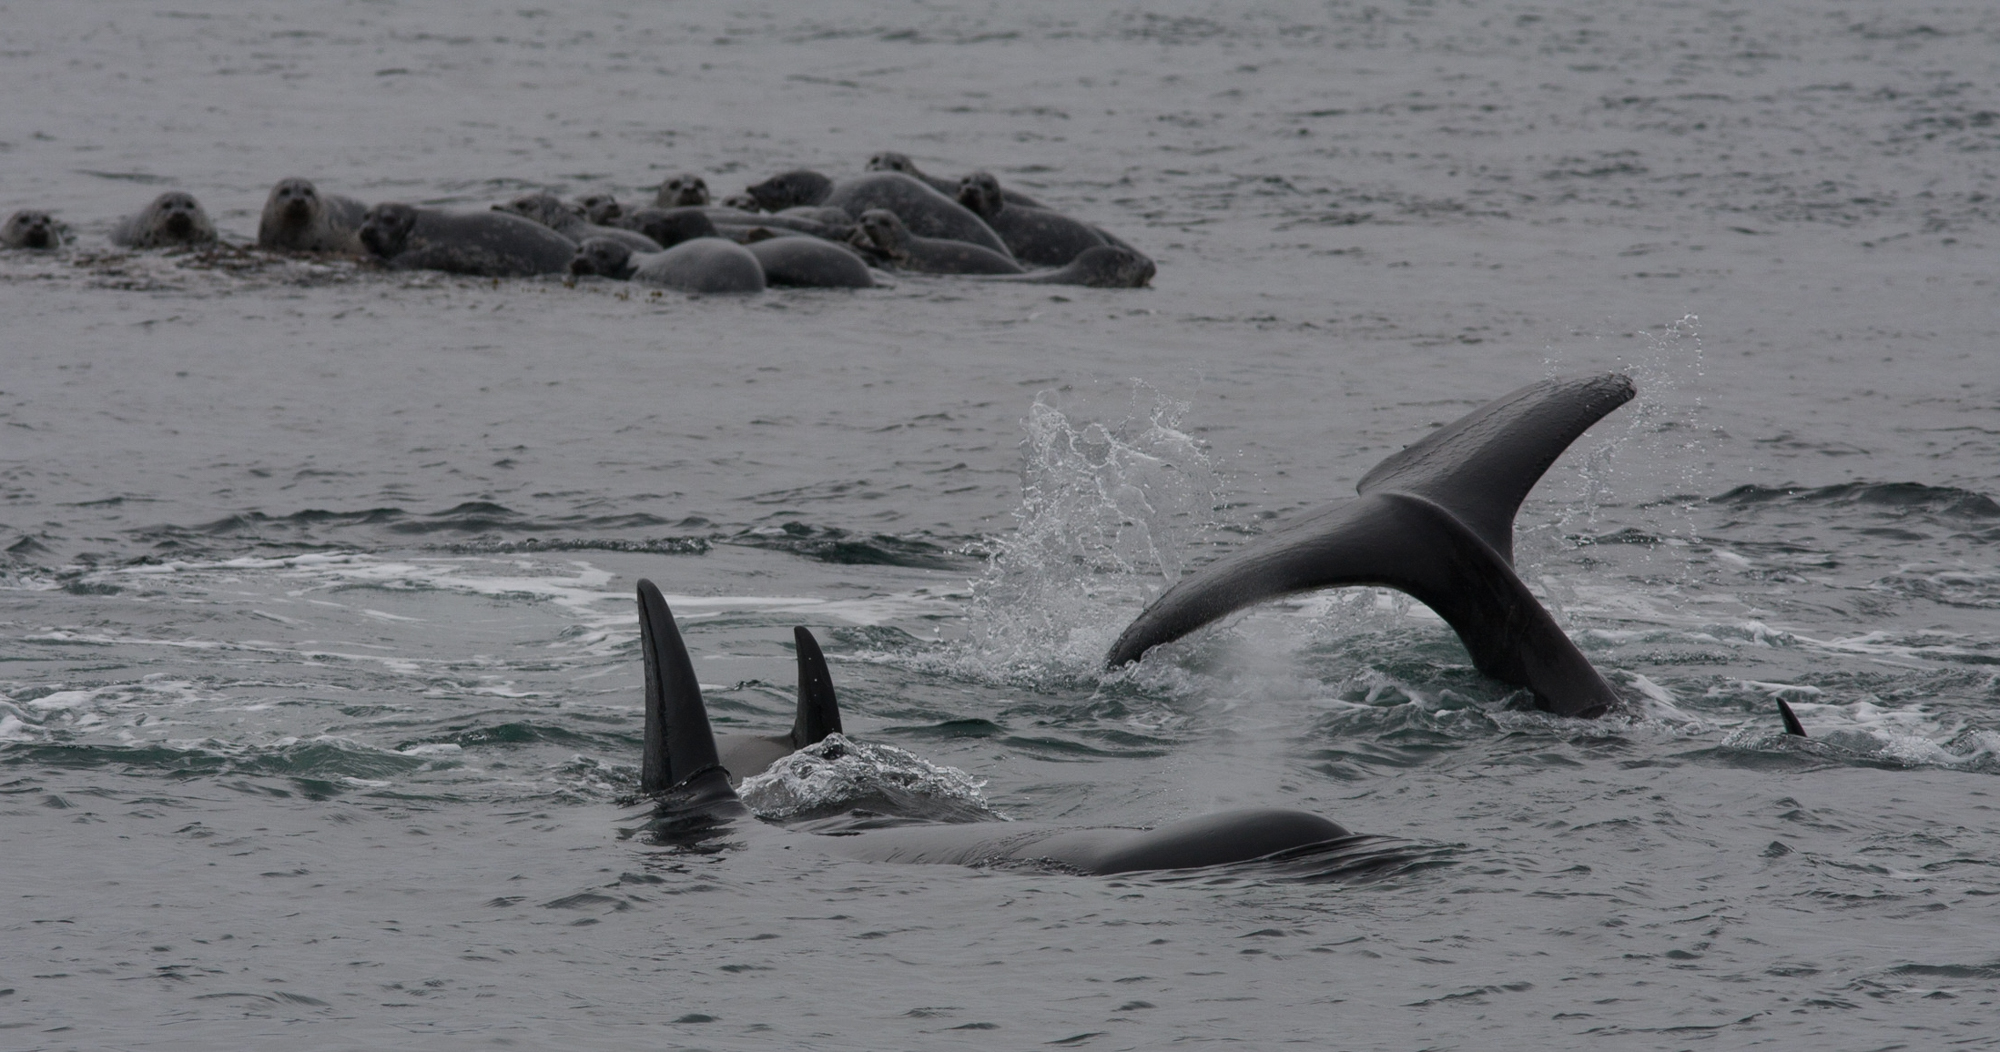 Orca whales near Yellow Island. Photo by Phil Green.